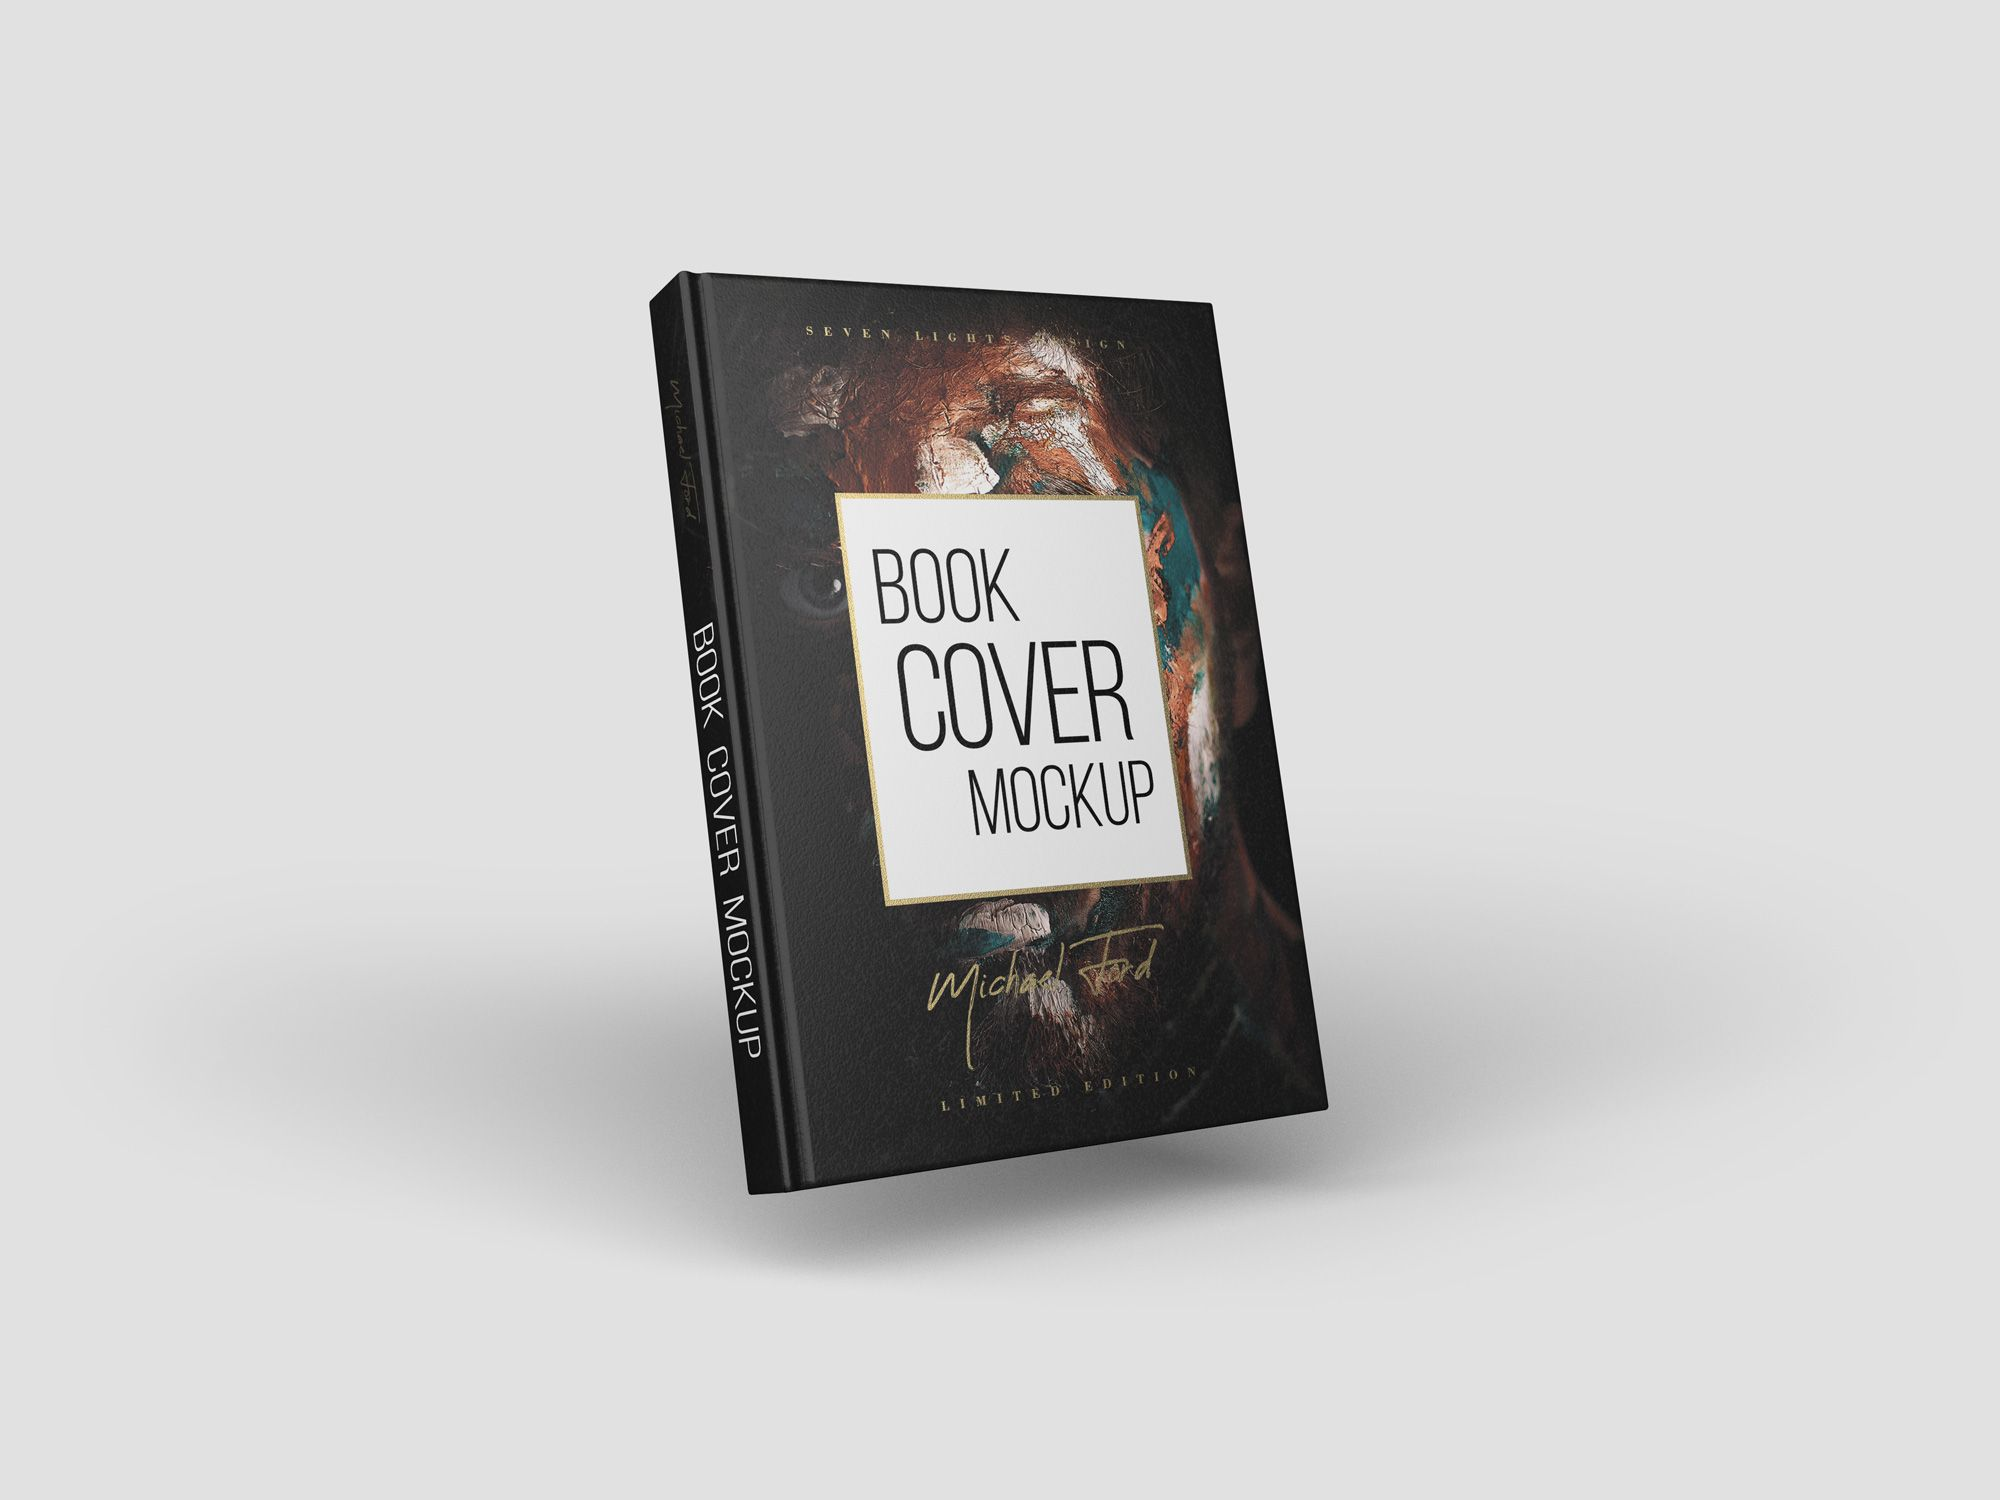 Download Cover Book Mockup Book Cover Mockup Book Cover Books PSD Mockup Templates